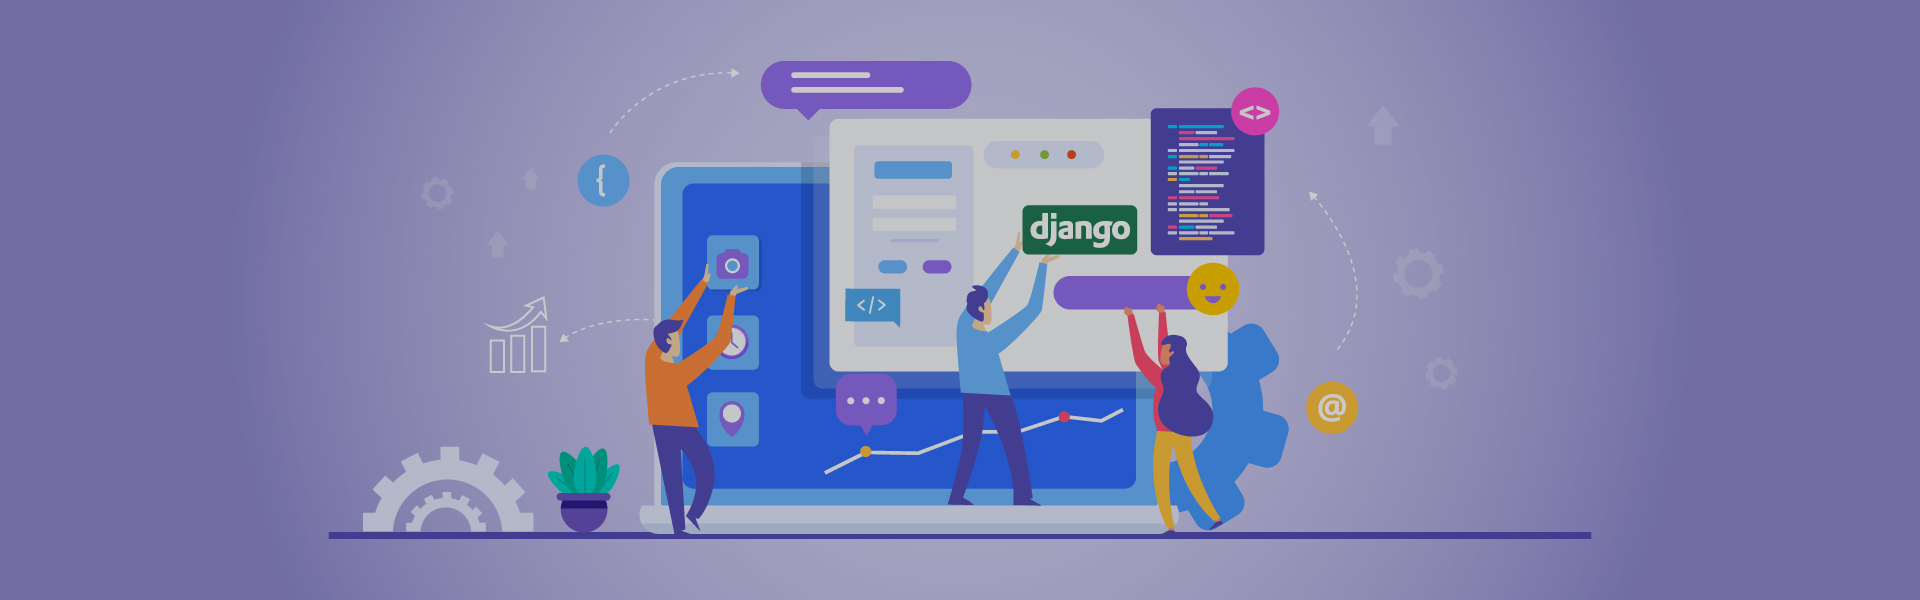 Django: Top 9 reasons why you should use it